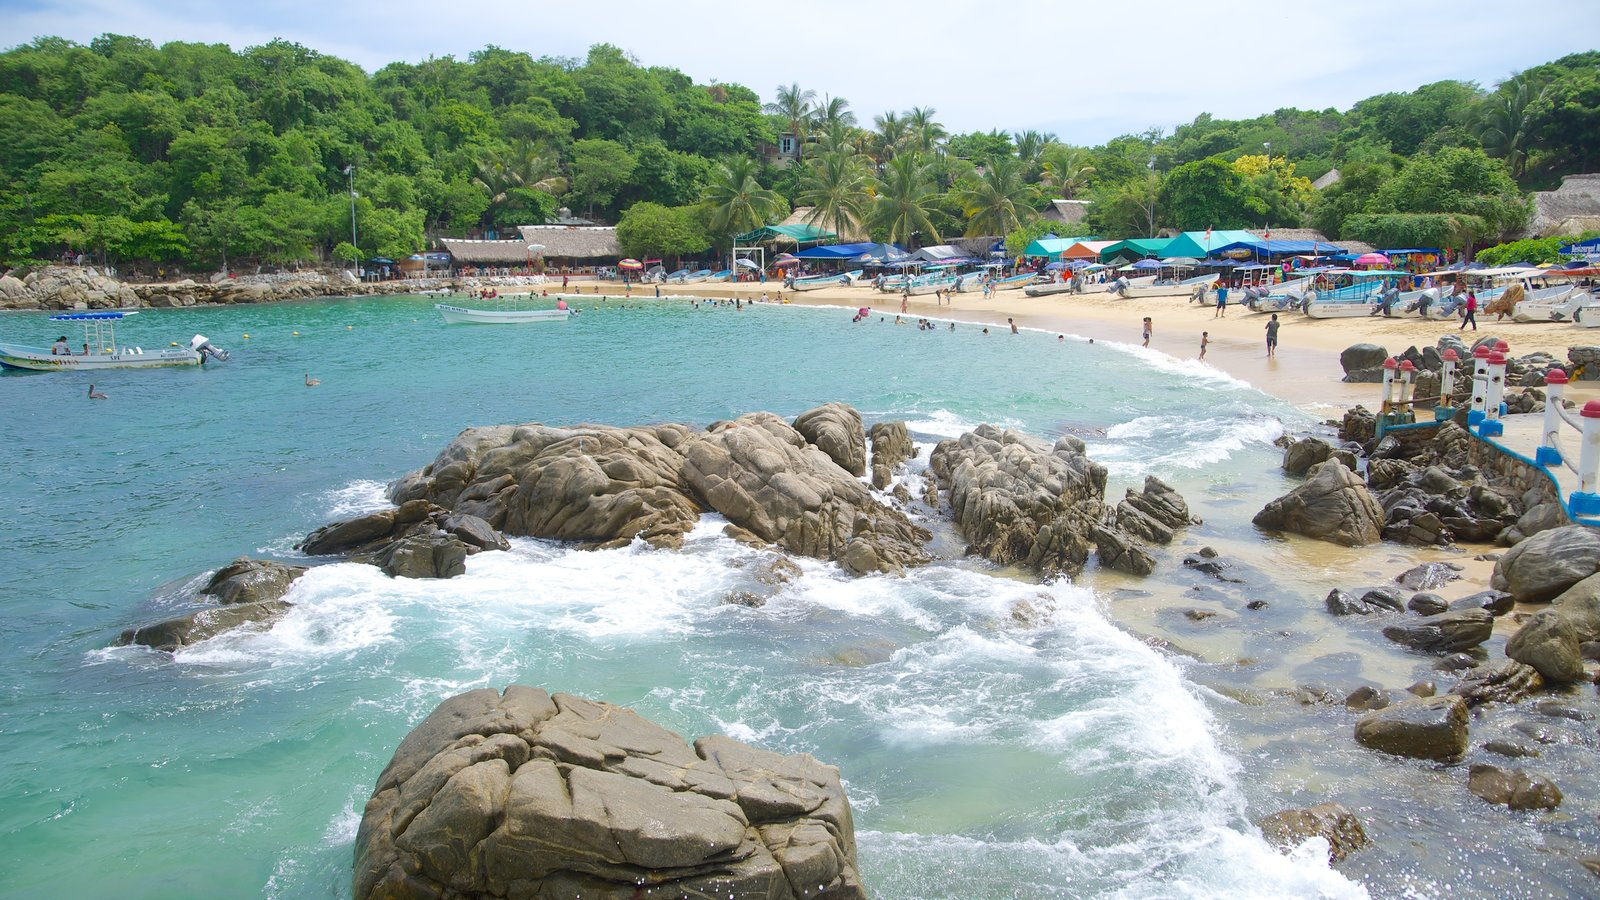 Puerto Angelito Beach featuring tropical scenes, rocky coastline and a beach